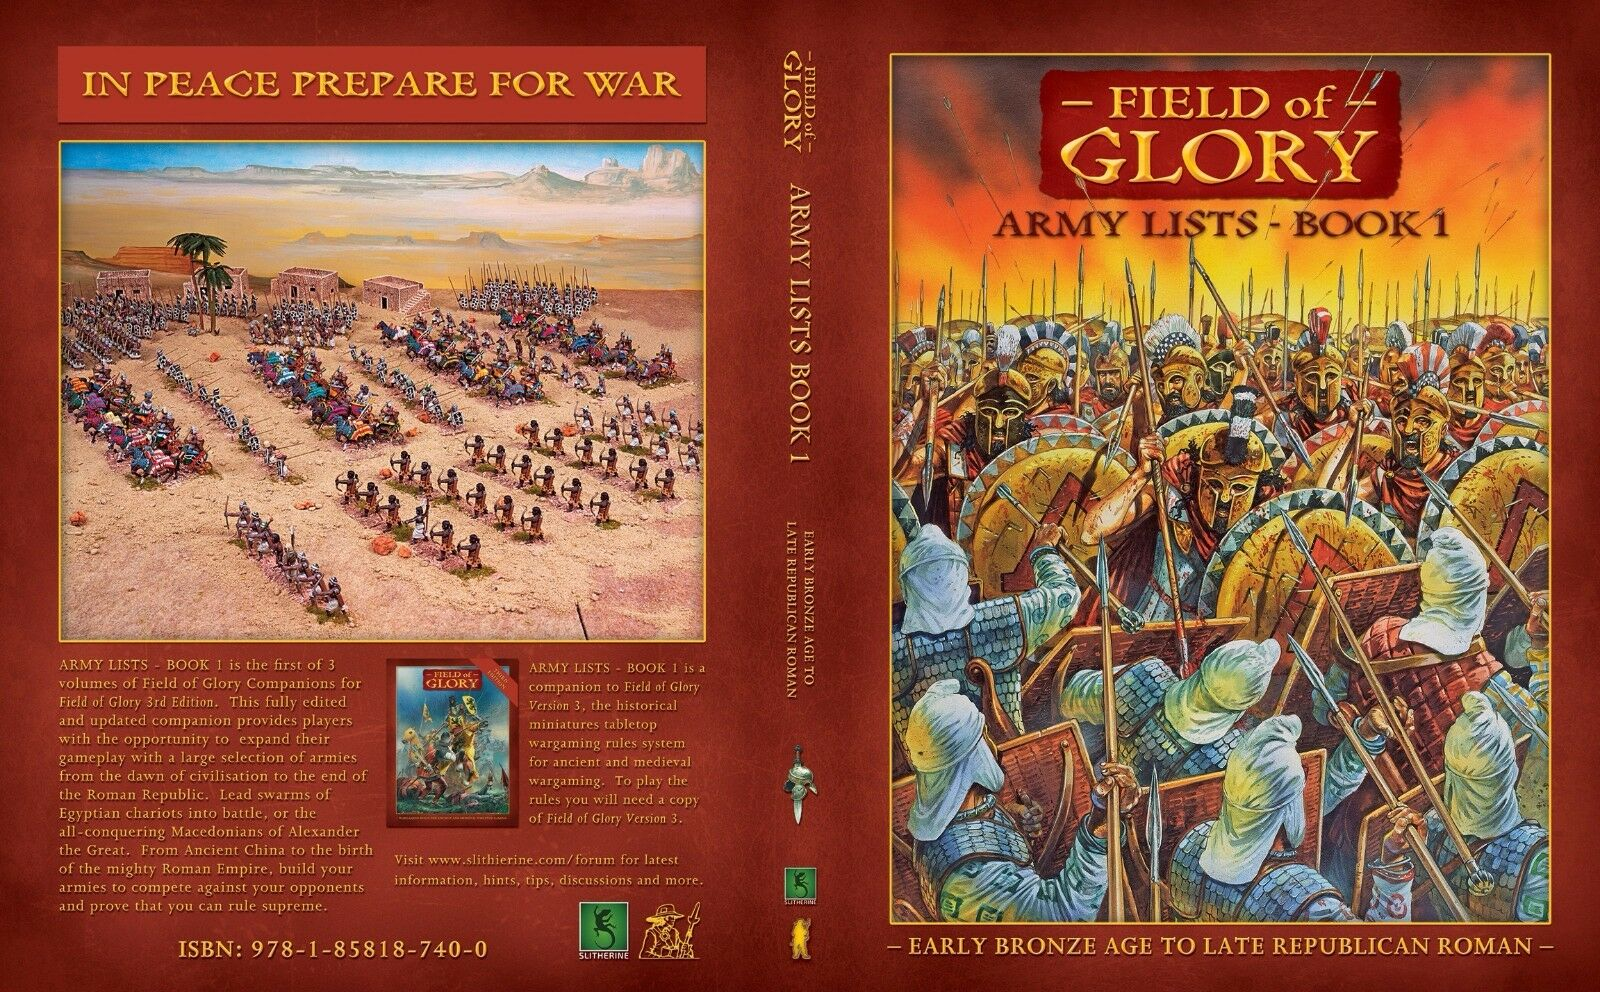 FIELD OF GLORY ARMY LISTS - BOOK 1  - PARTIZAN PRESS -  BRONZE AGE TO ROME